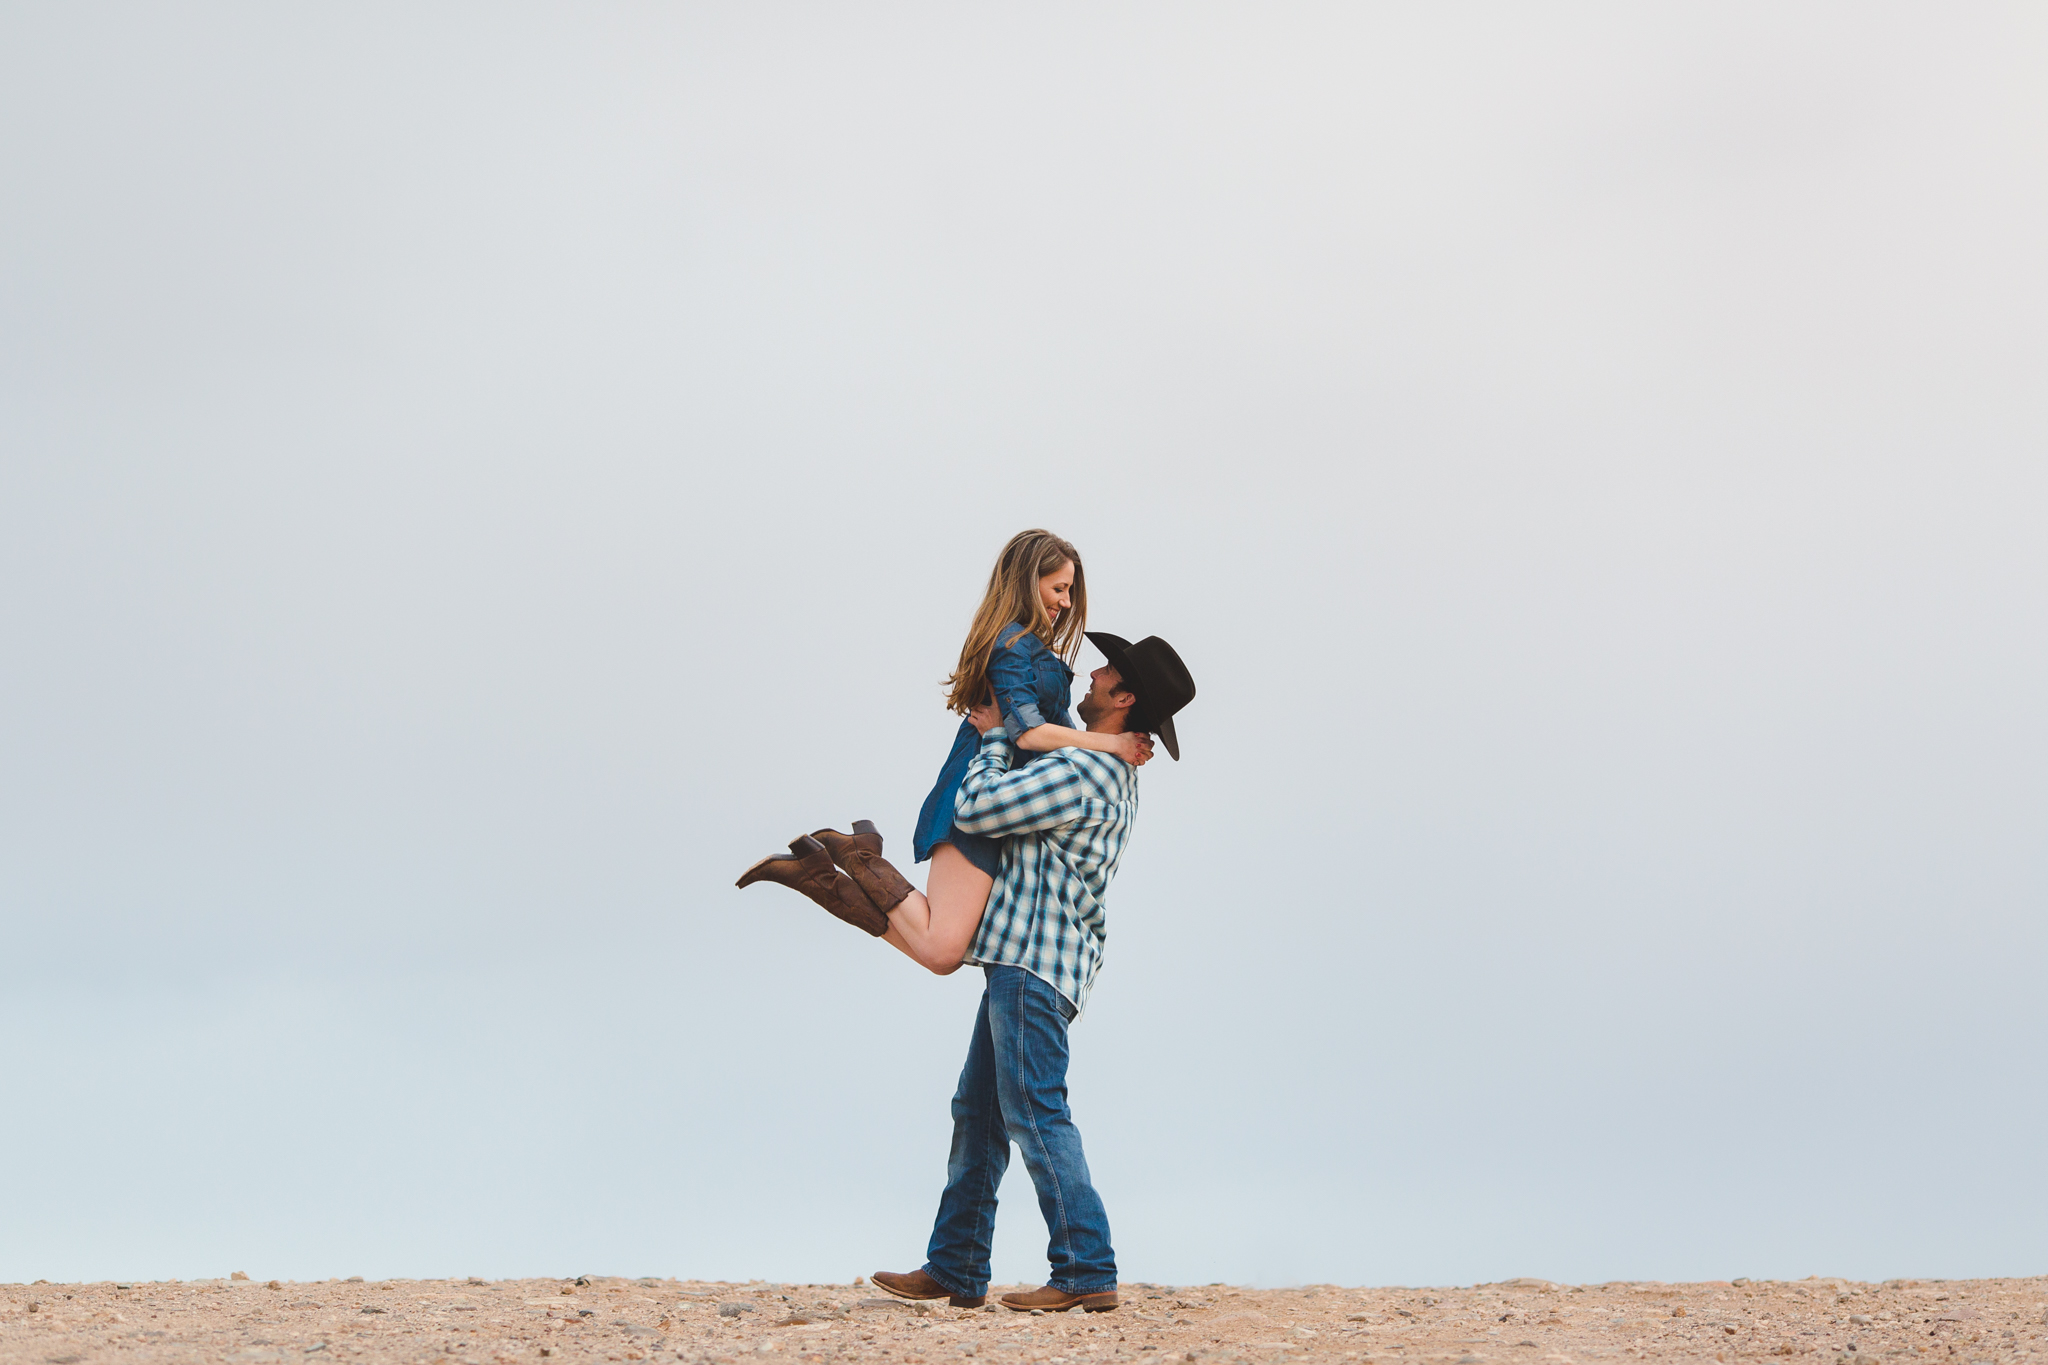 aaron-kes-photography-arizona-desert-engagement-session-julie-matt-blog13.jpg